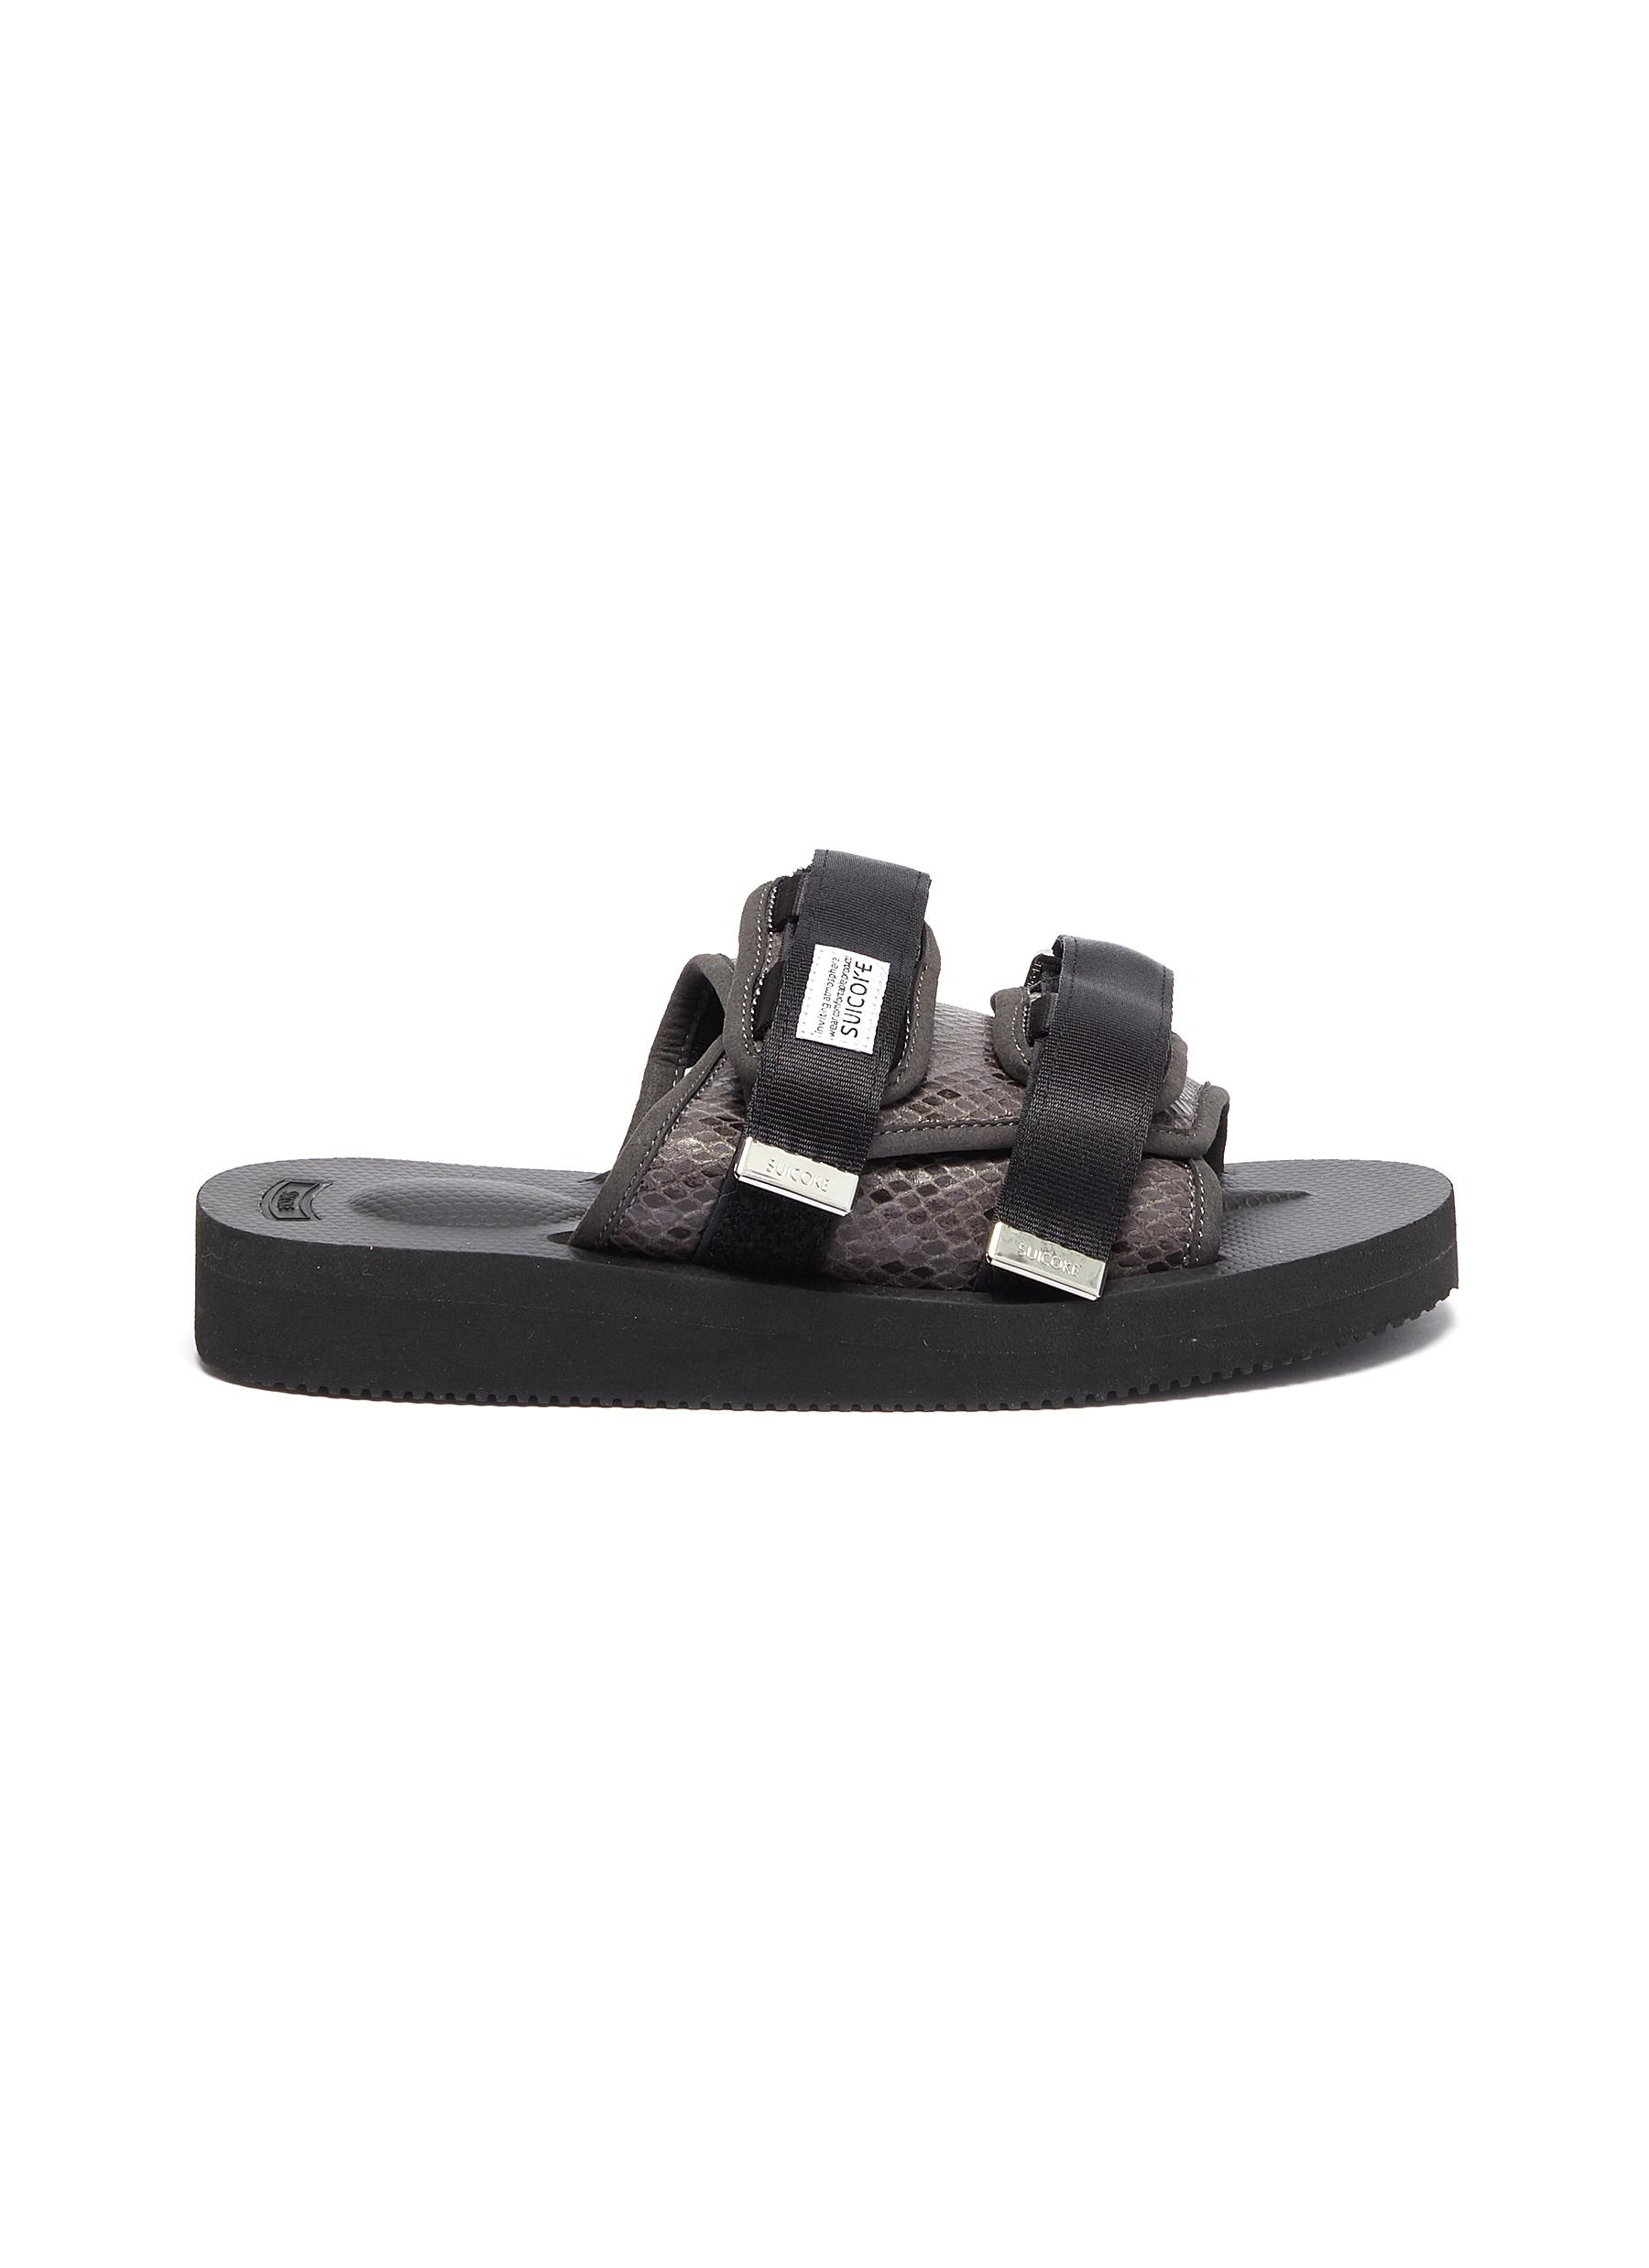 MOTO-VS strappy band faux python embossed leather slide sandals by Suicoke